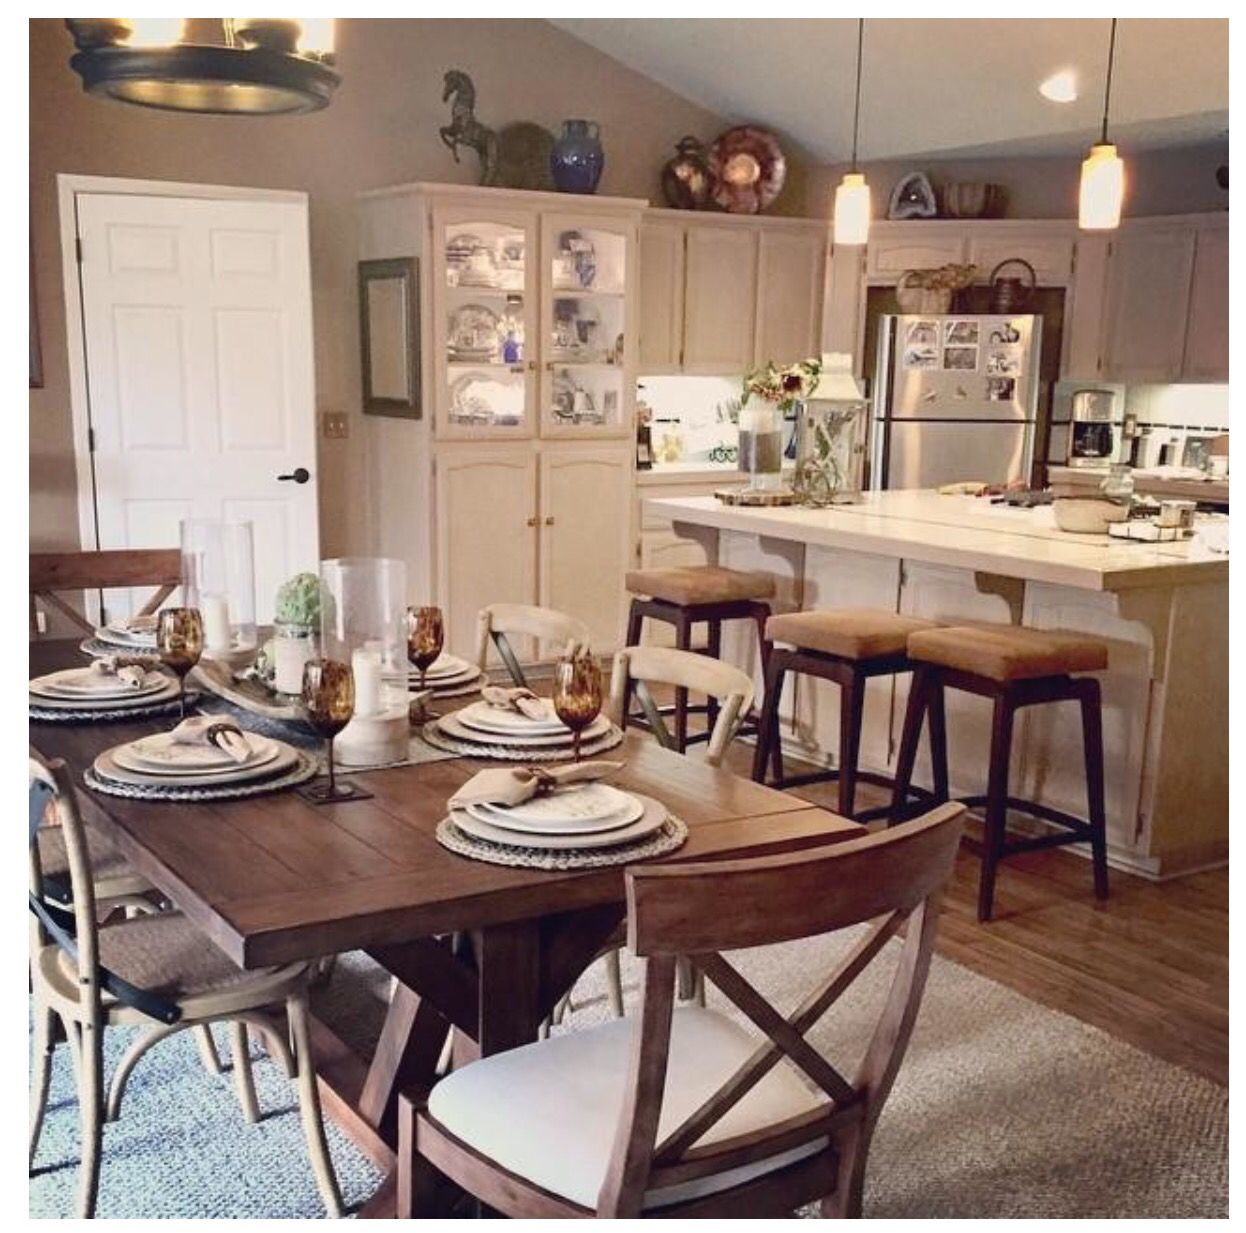 Pottery Barn: Toscana Extending Dining Table | Out With The With Regard To Most Current Tuscan Chestnut Toscana Dining Tables (View 24 of 25)